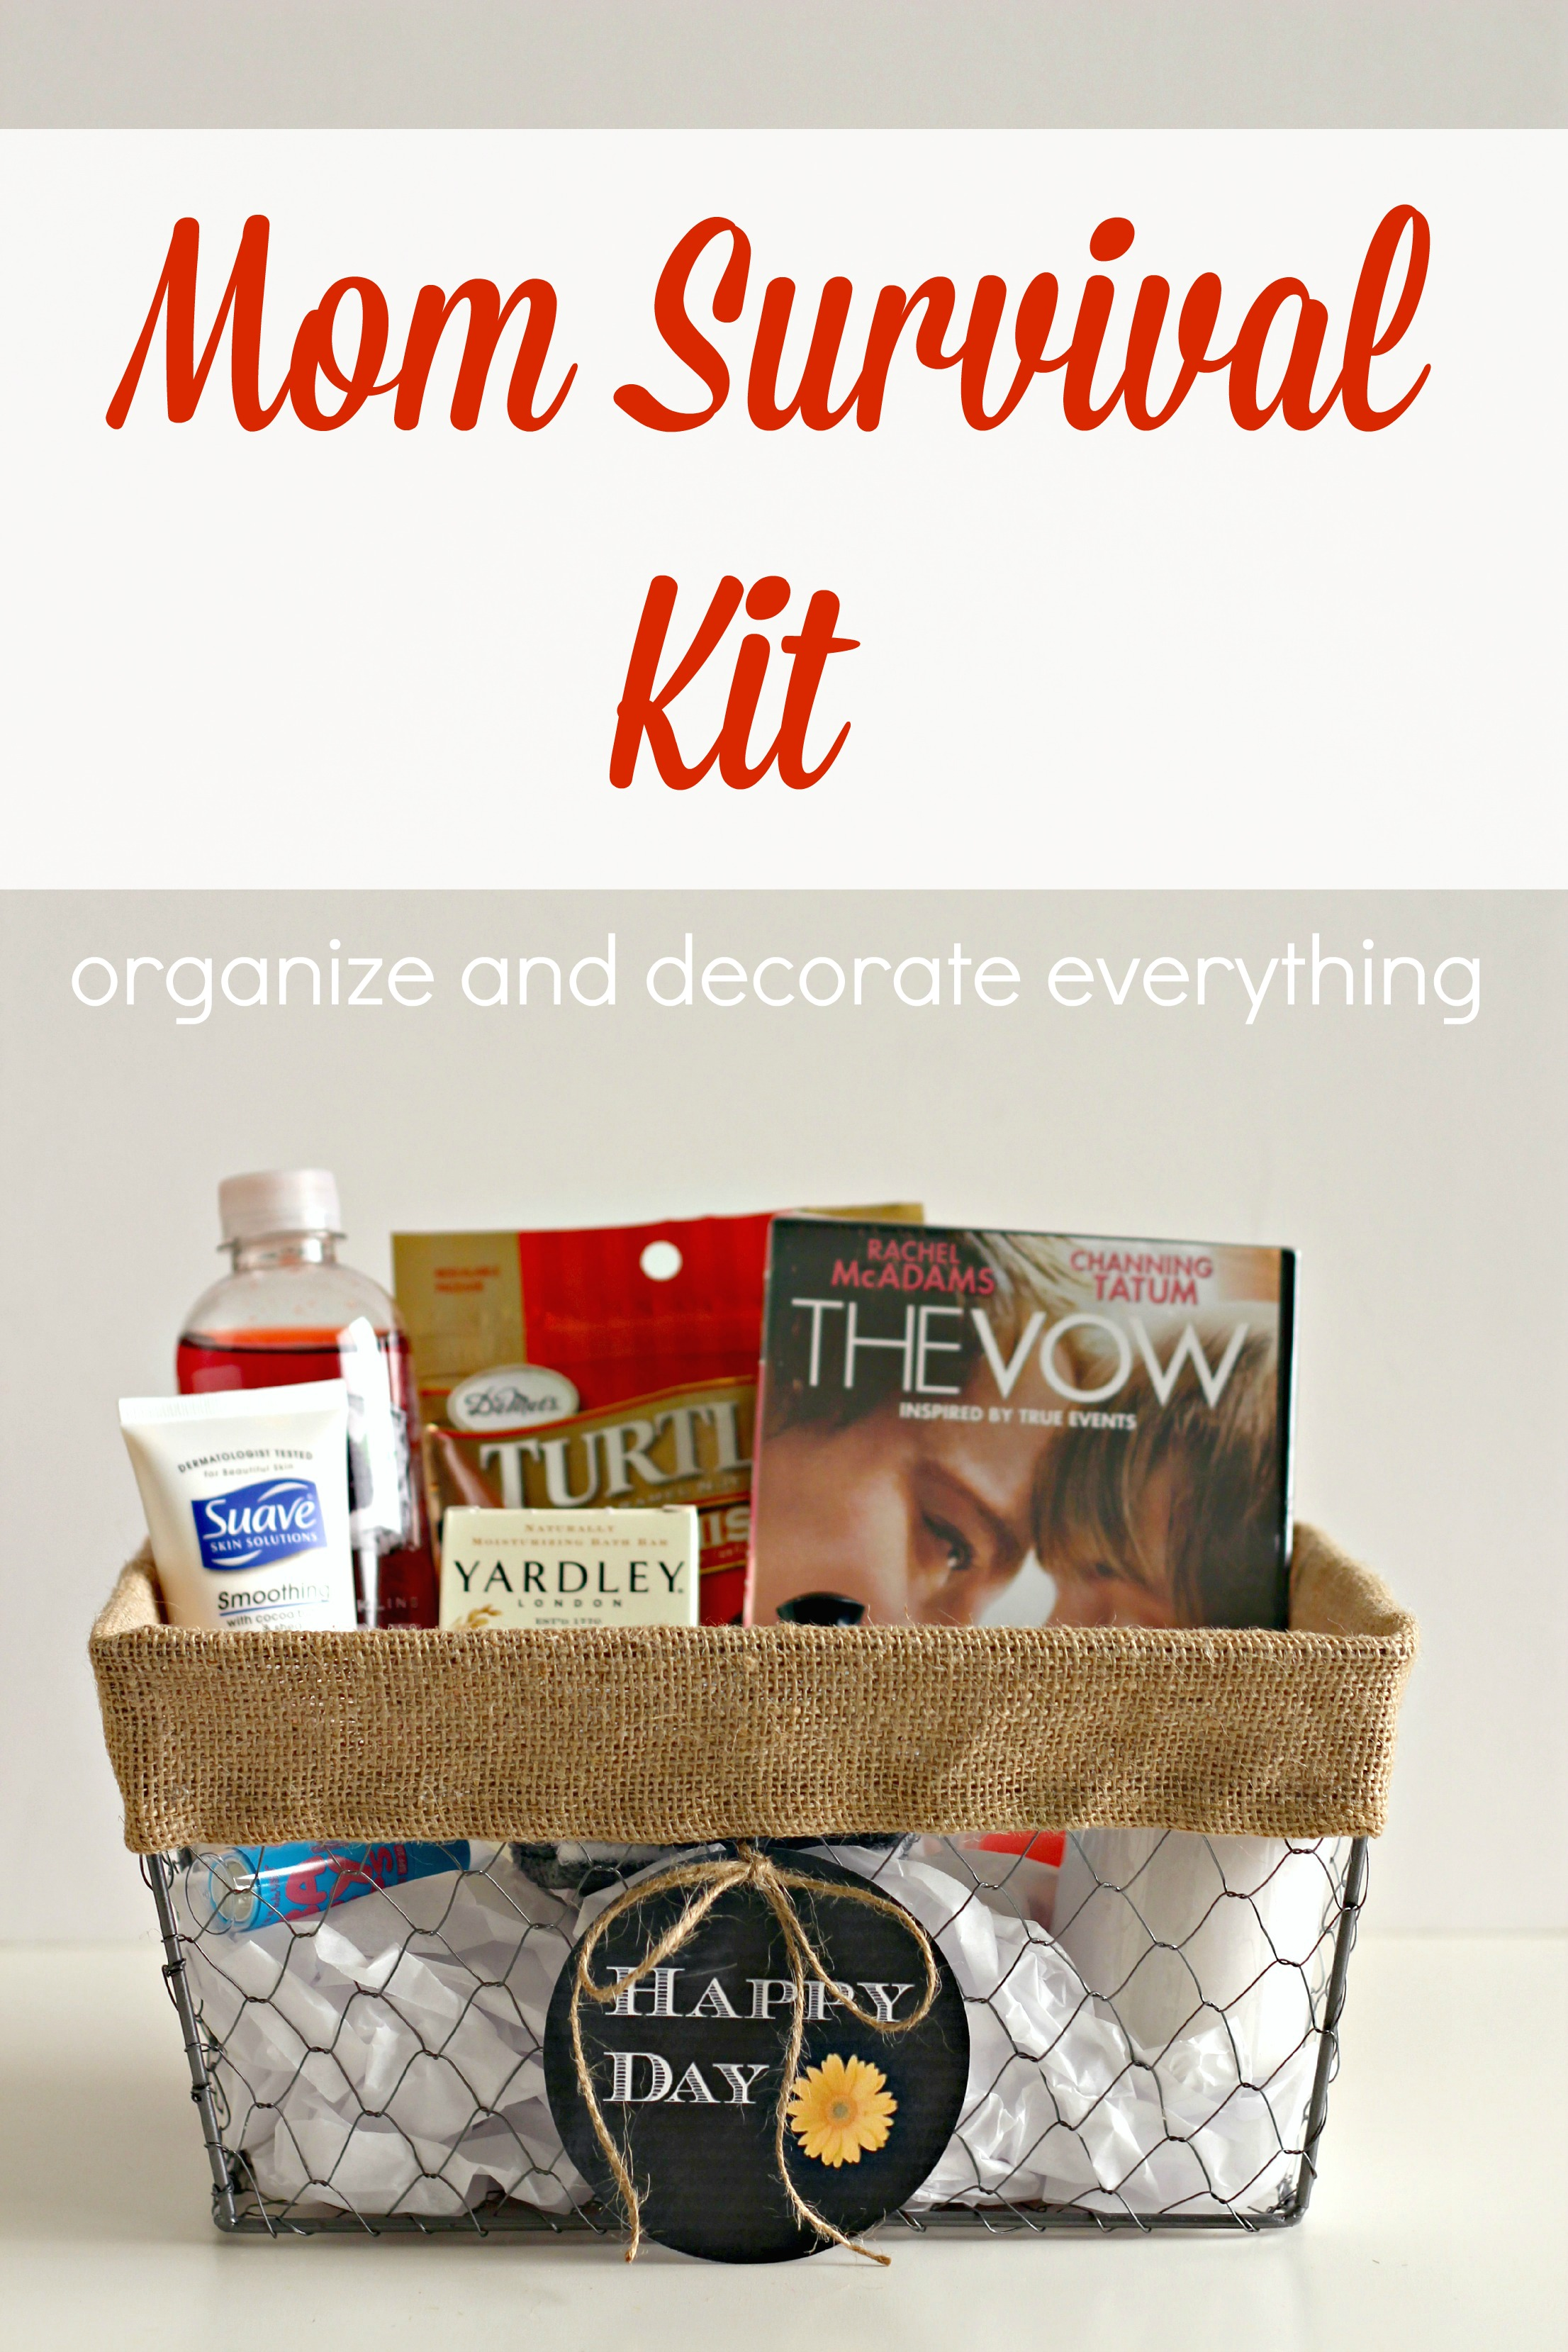 Mom Survival Kit for Mother's Day or any day